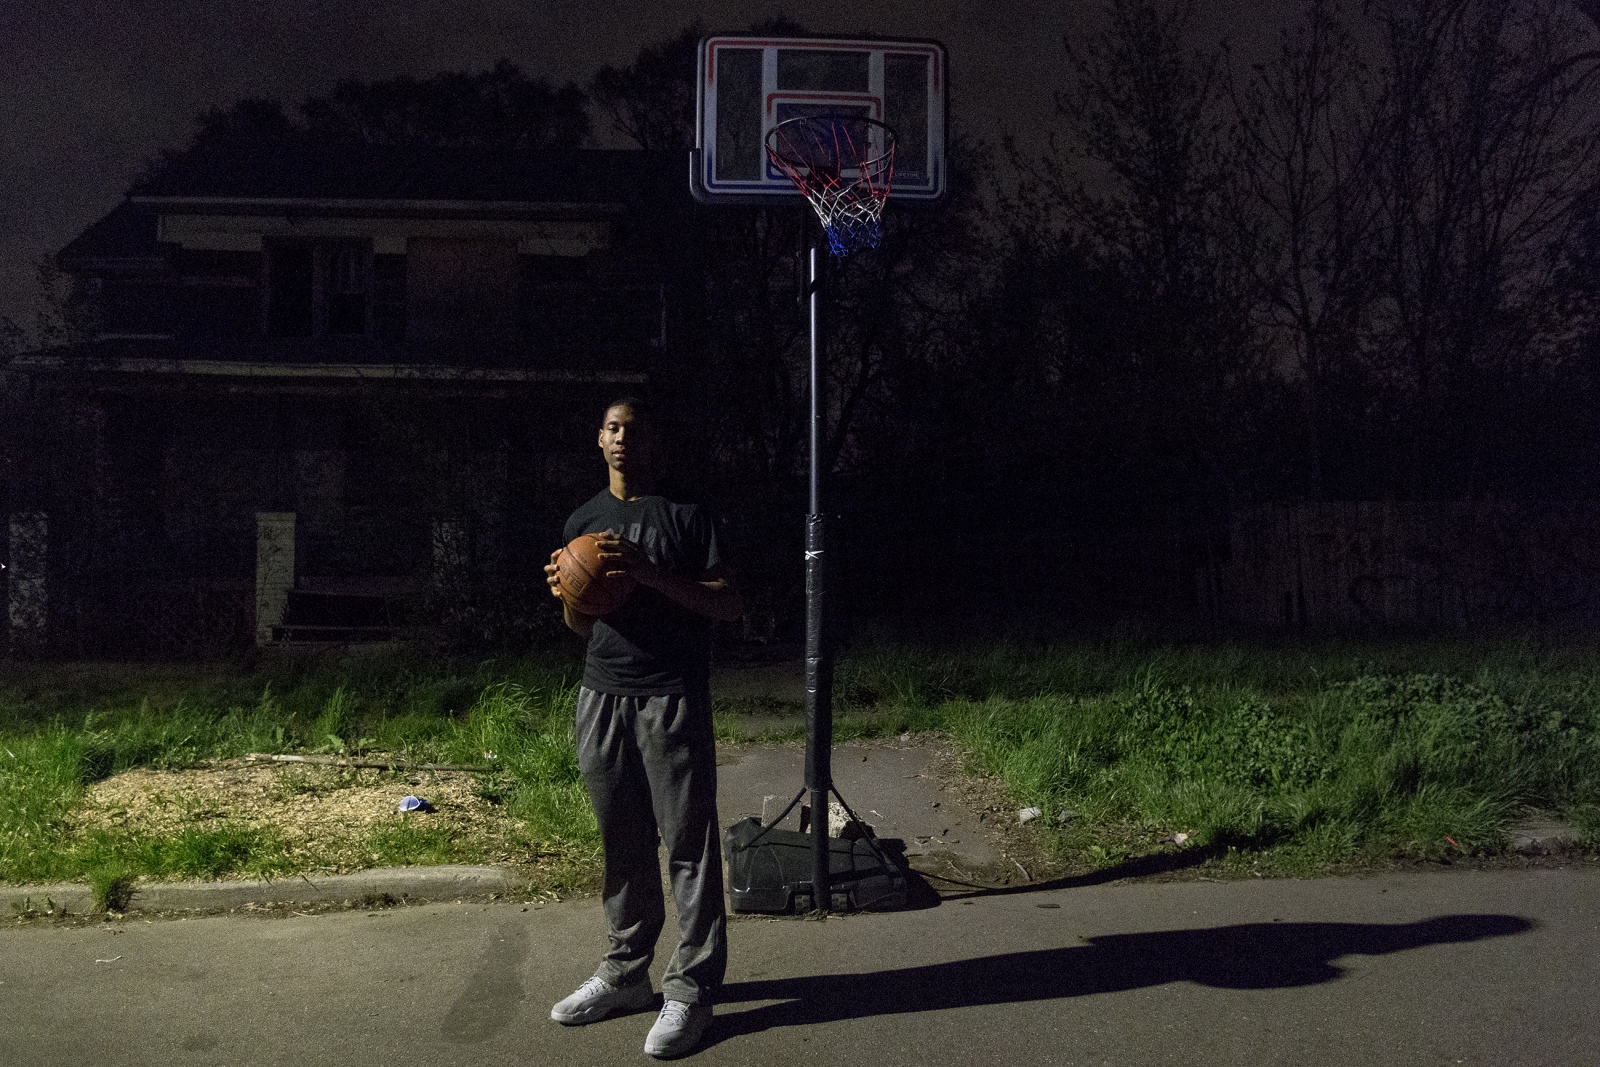 Michael Green, 17, stands under the same basketball hoop he was shot at when he was only 12 years old, down the street from his home in Detroit. Michael accepted a scholarship to play basketball at Miles College in Alabama for fall 2018.